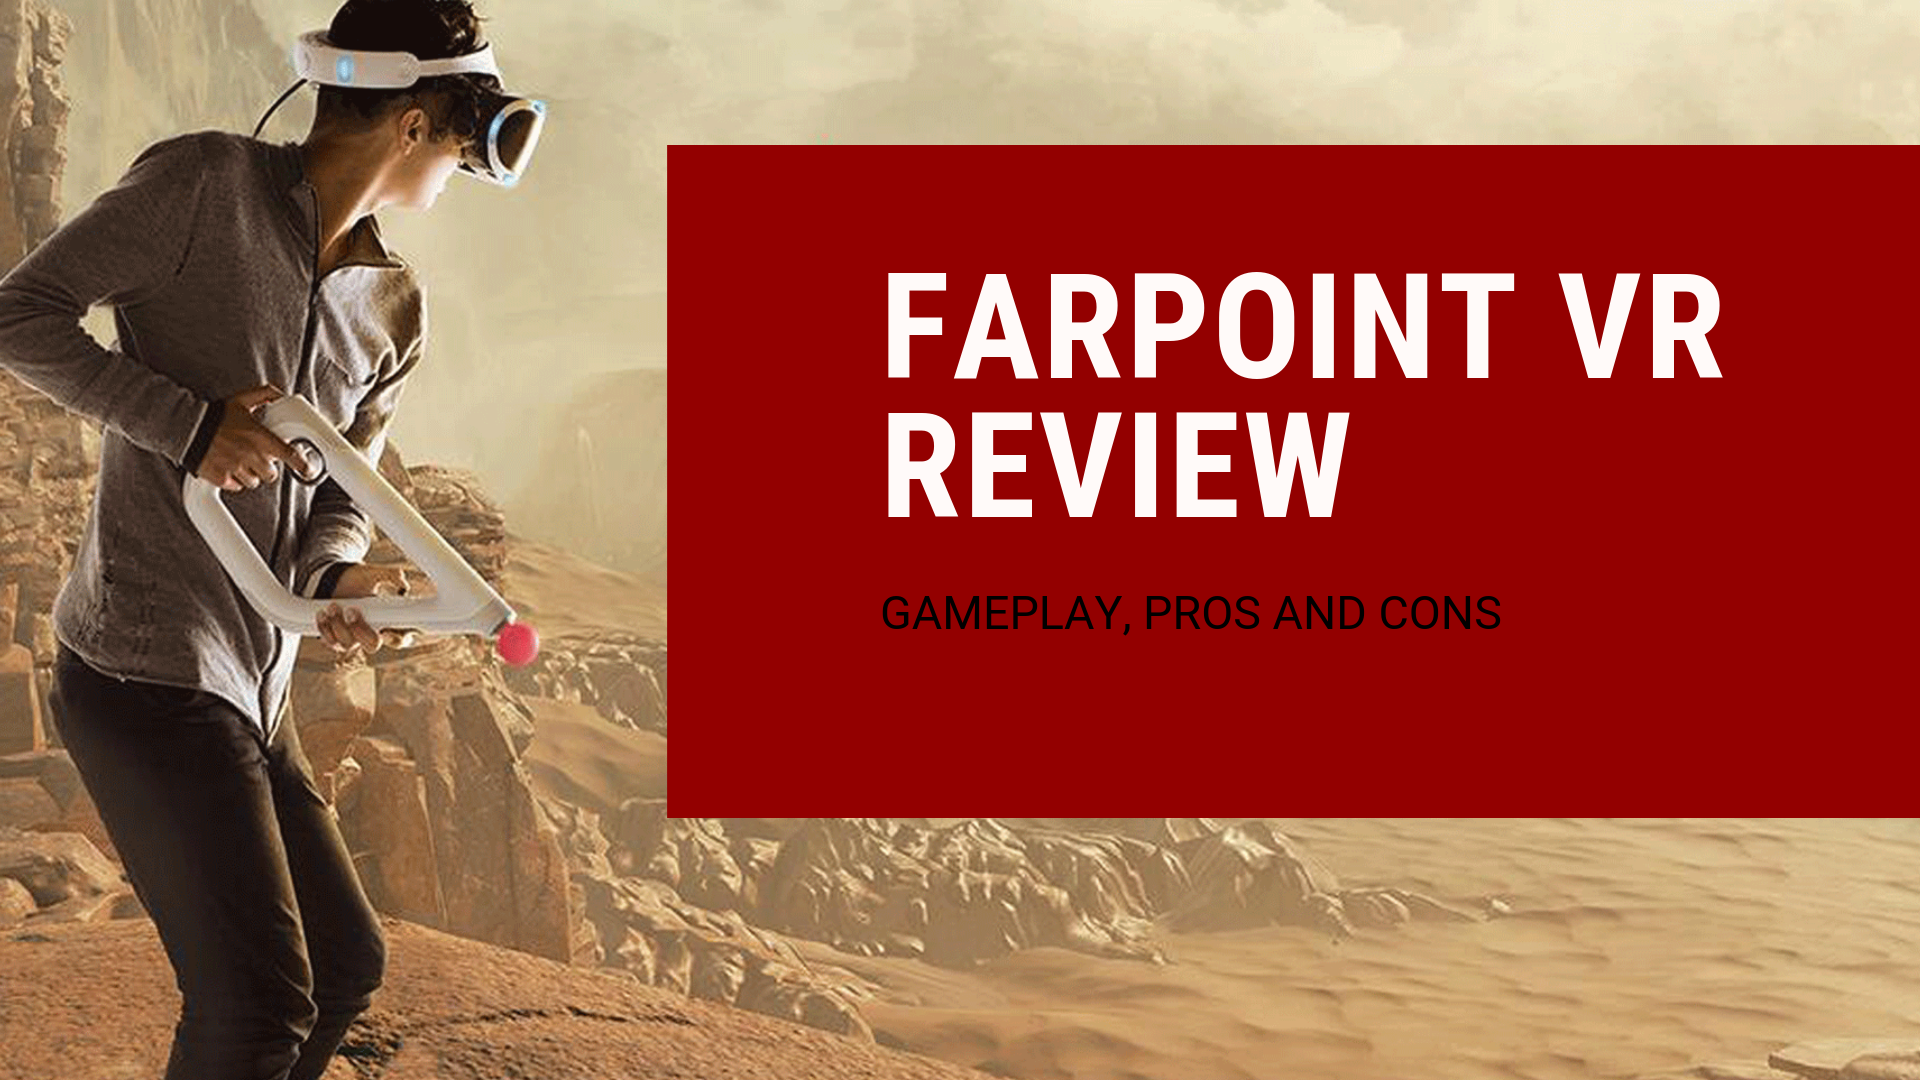 Farpoint VR Review: Gameplay, Pros and Cons